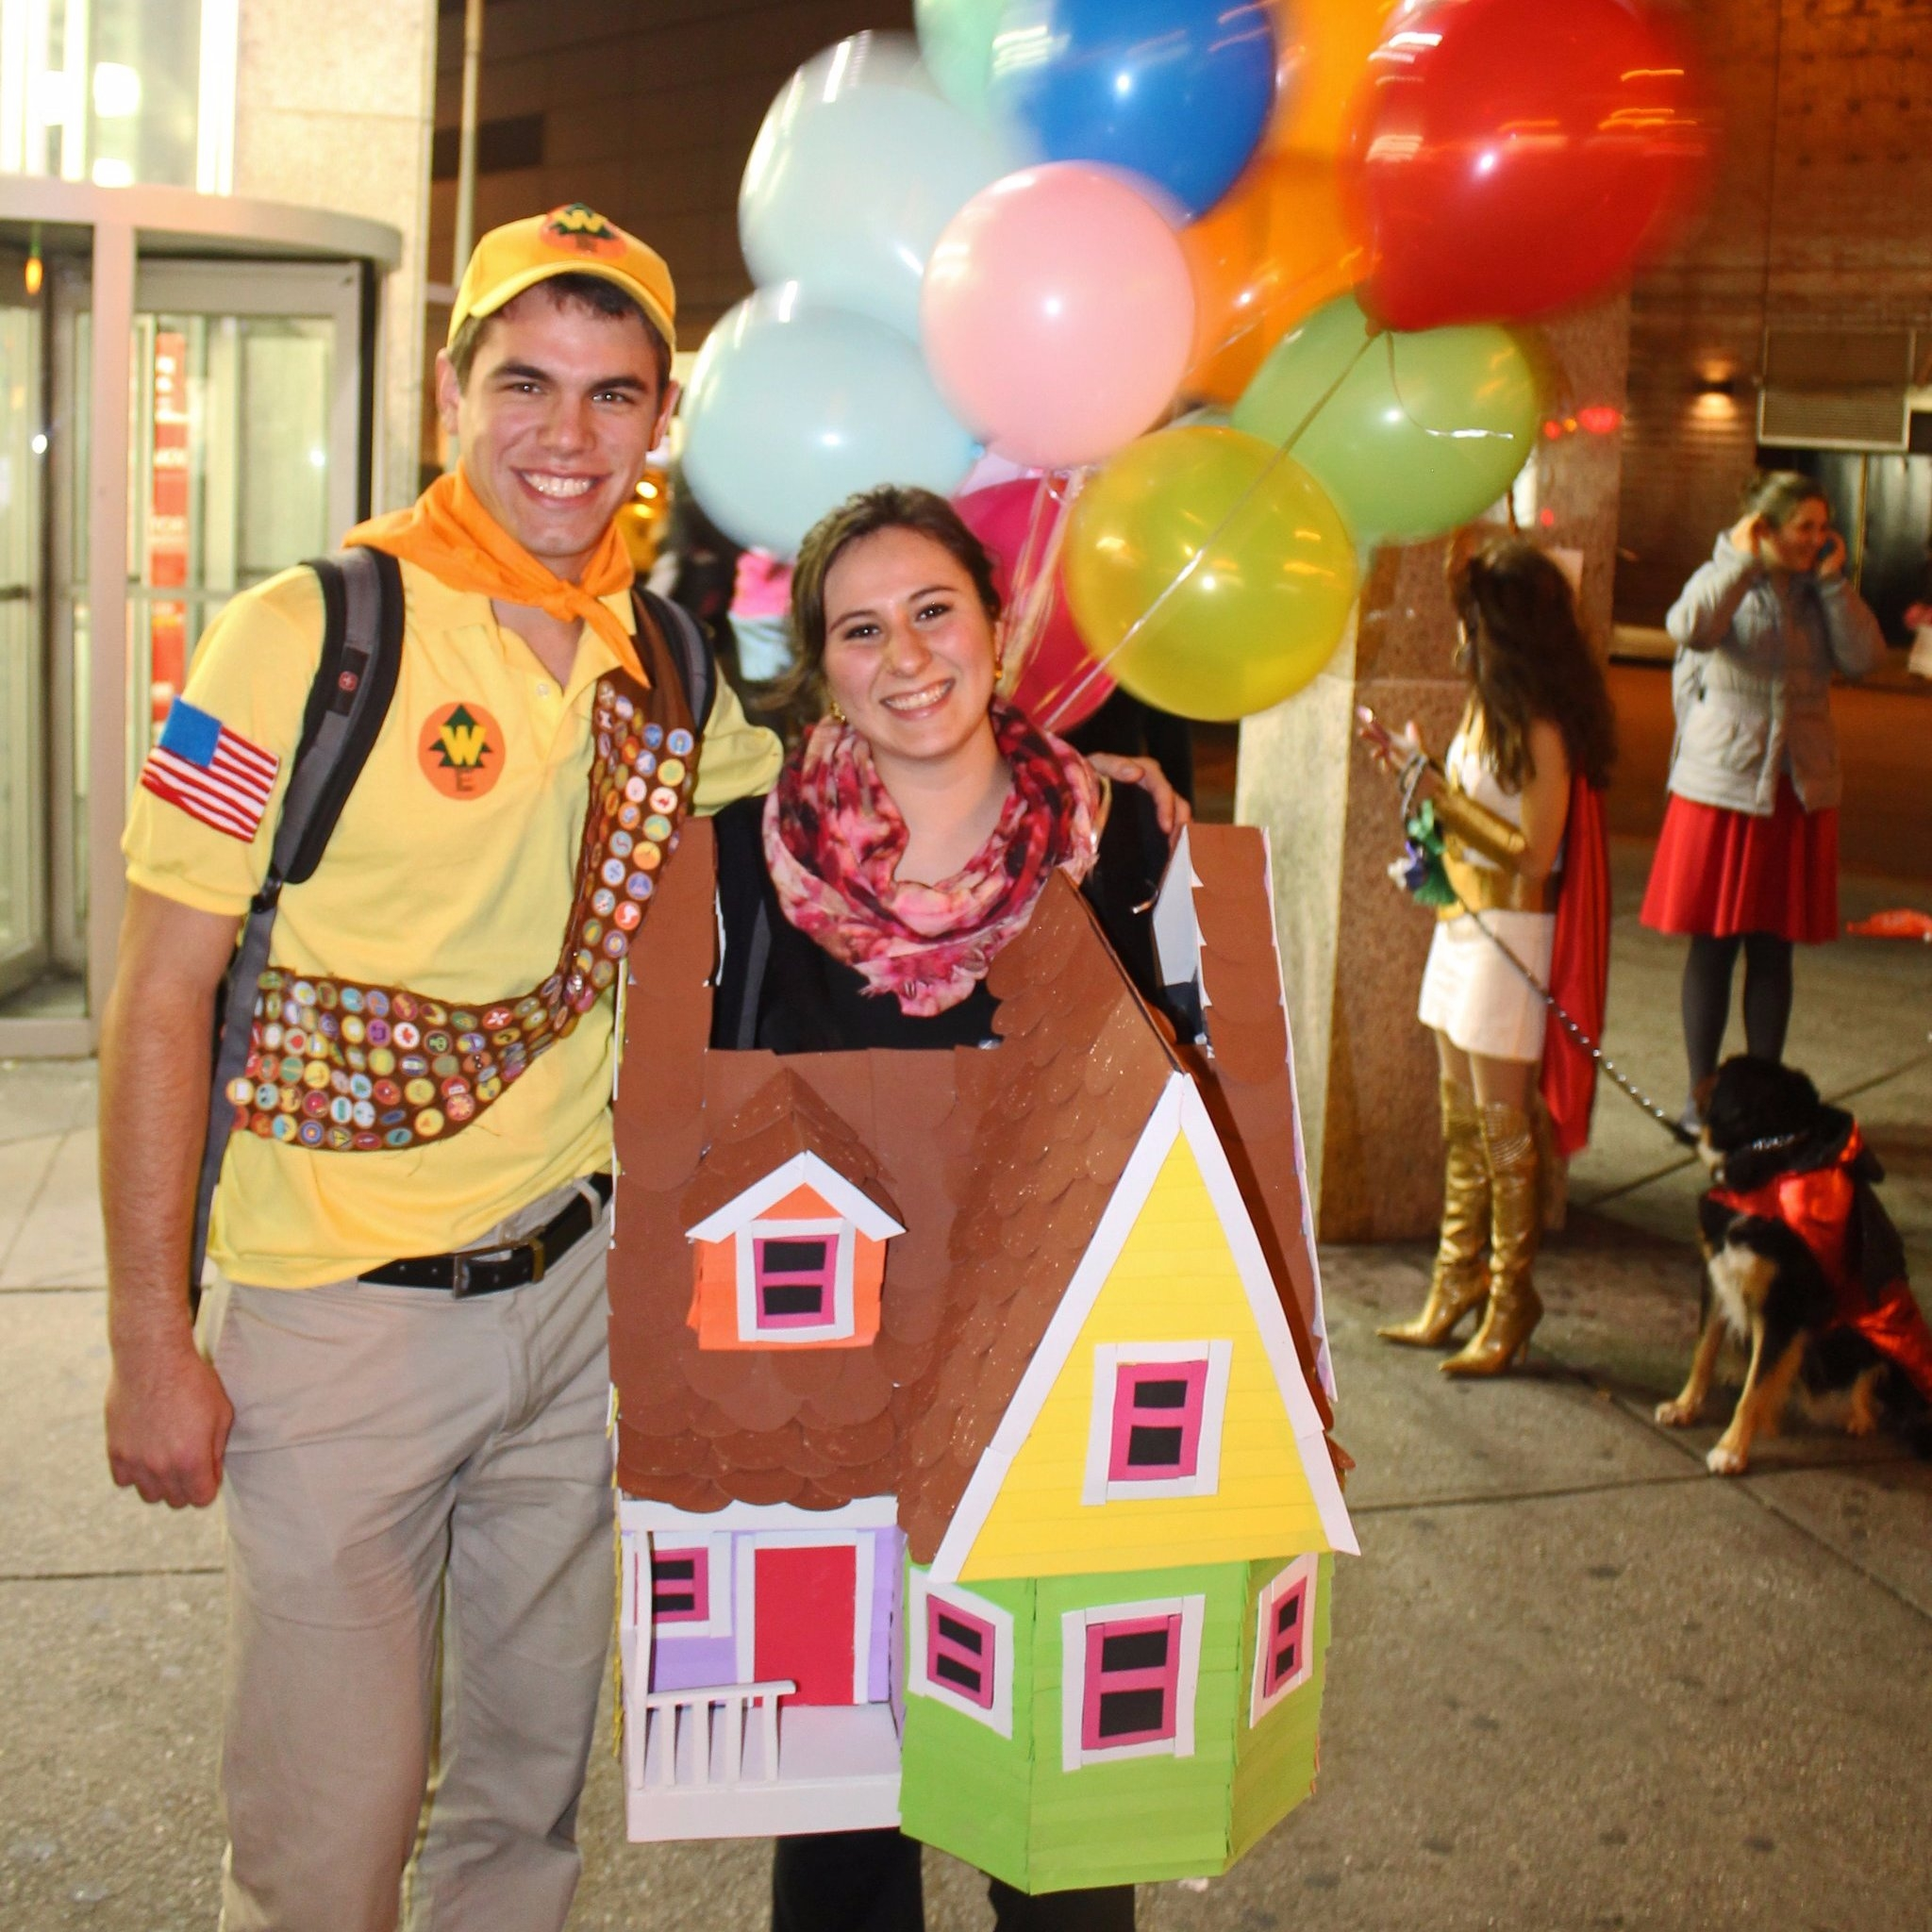 10 Ideal Funny Homemade Halloween Costume Ideas For Adults ...